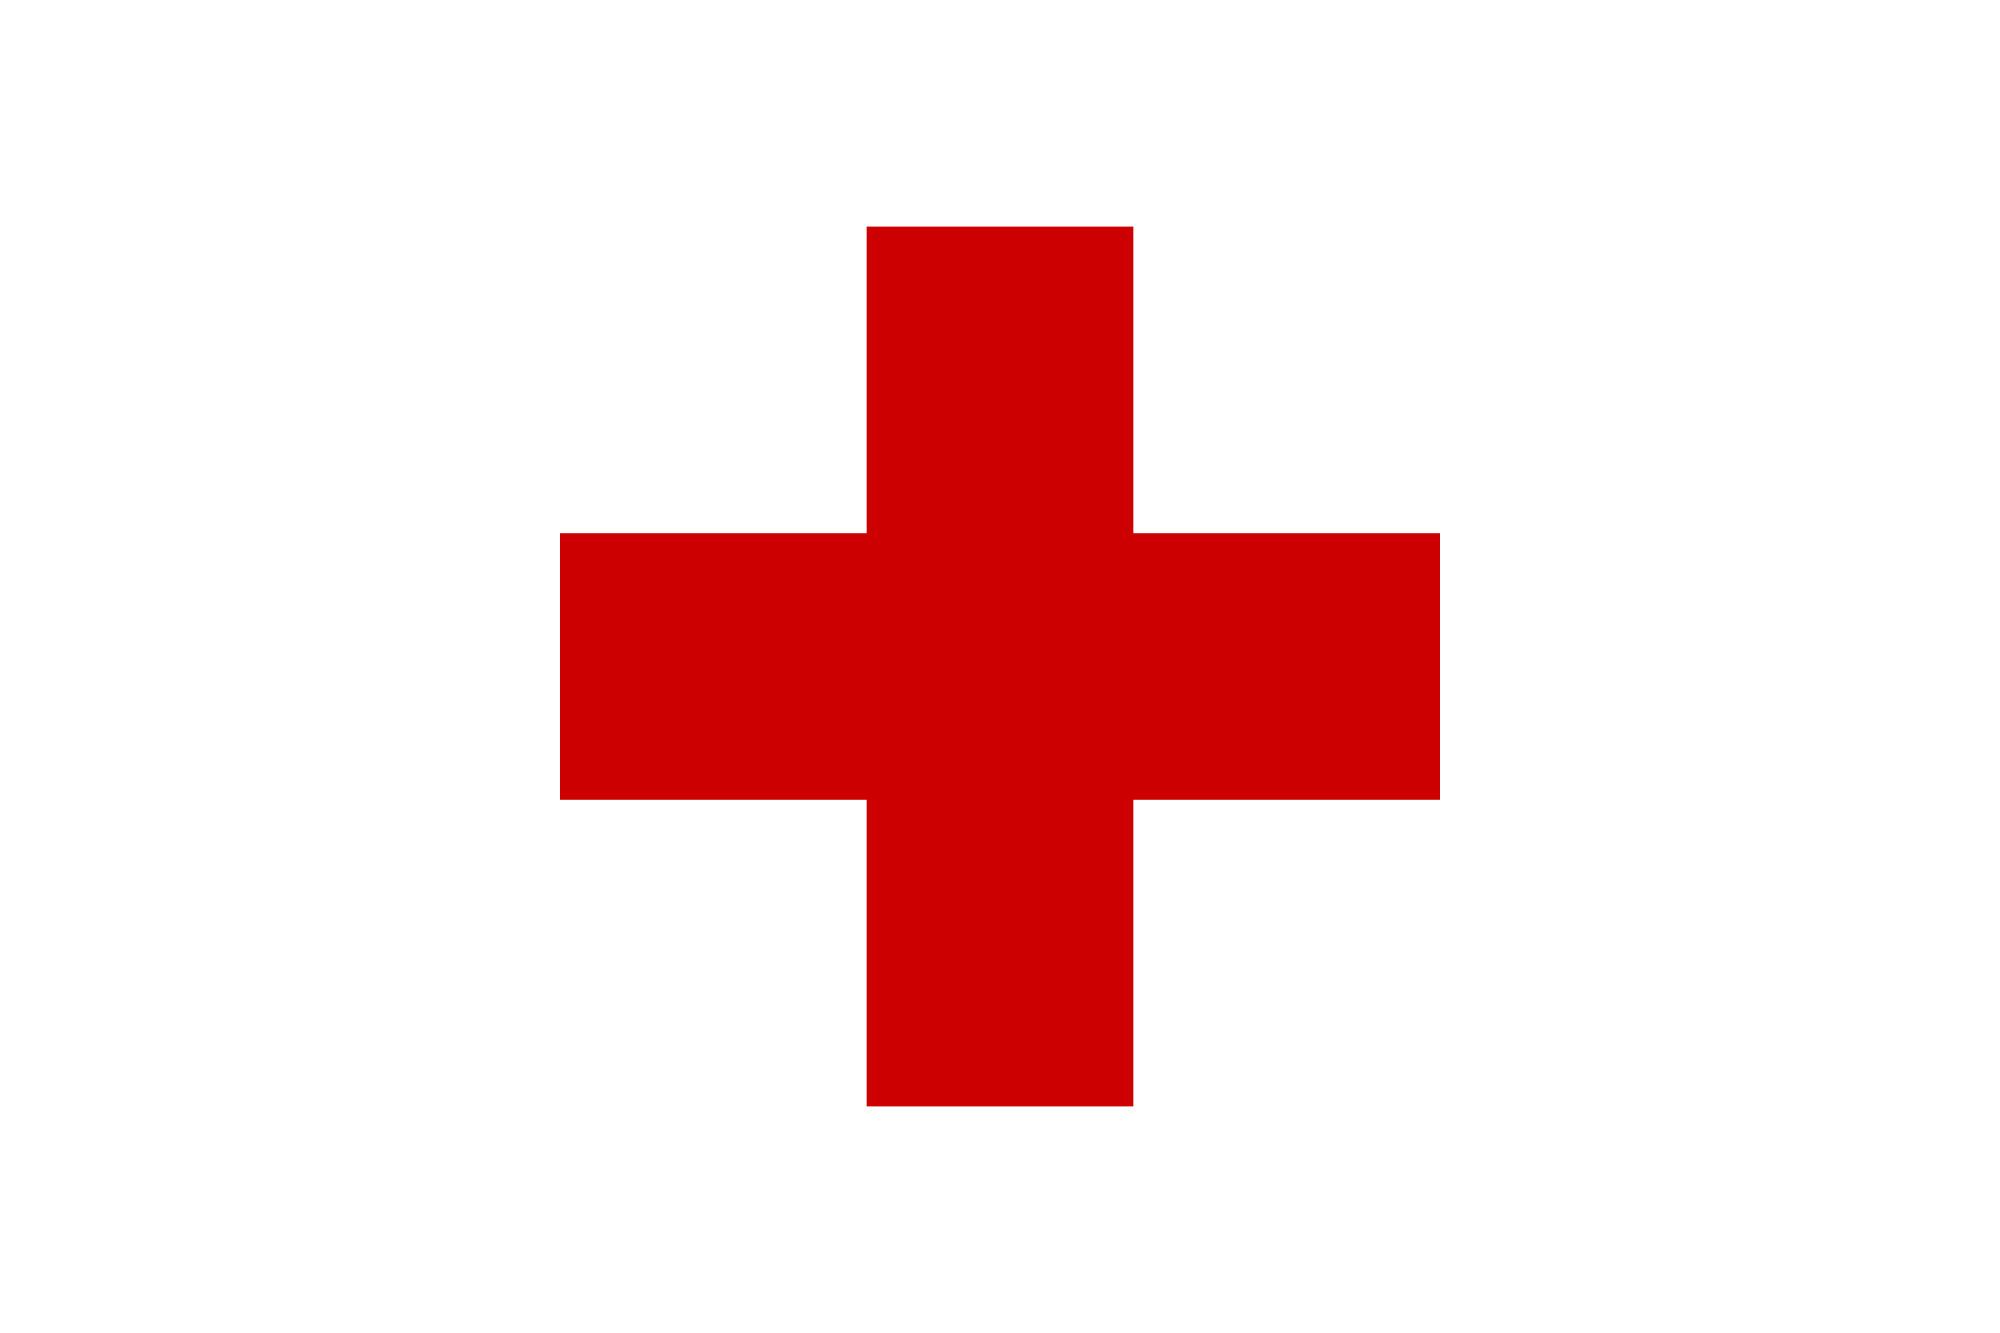 File:Flag of the Red Cross.png - Wikipedia